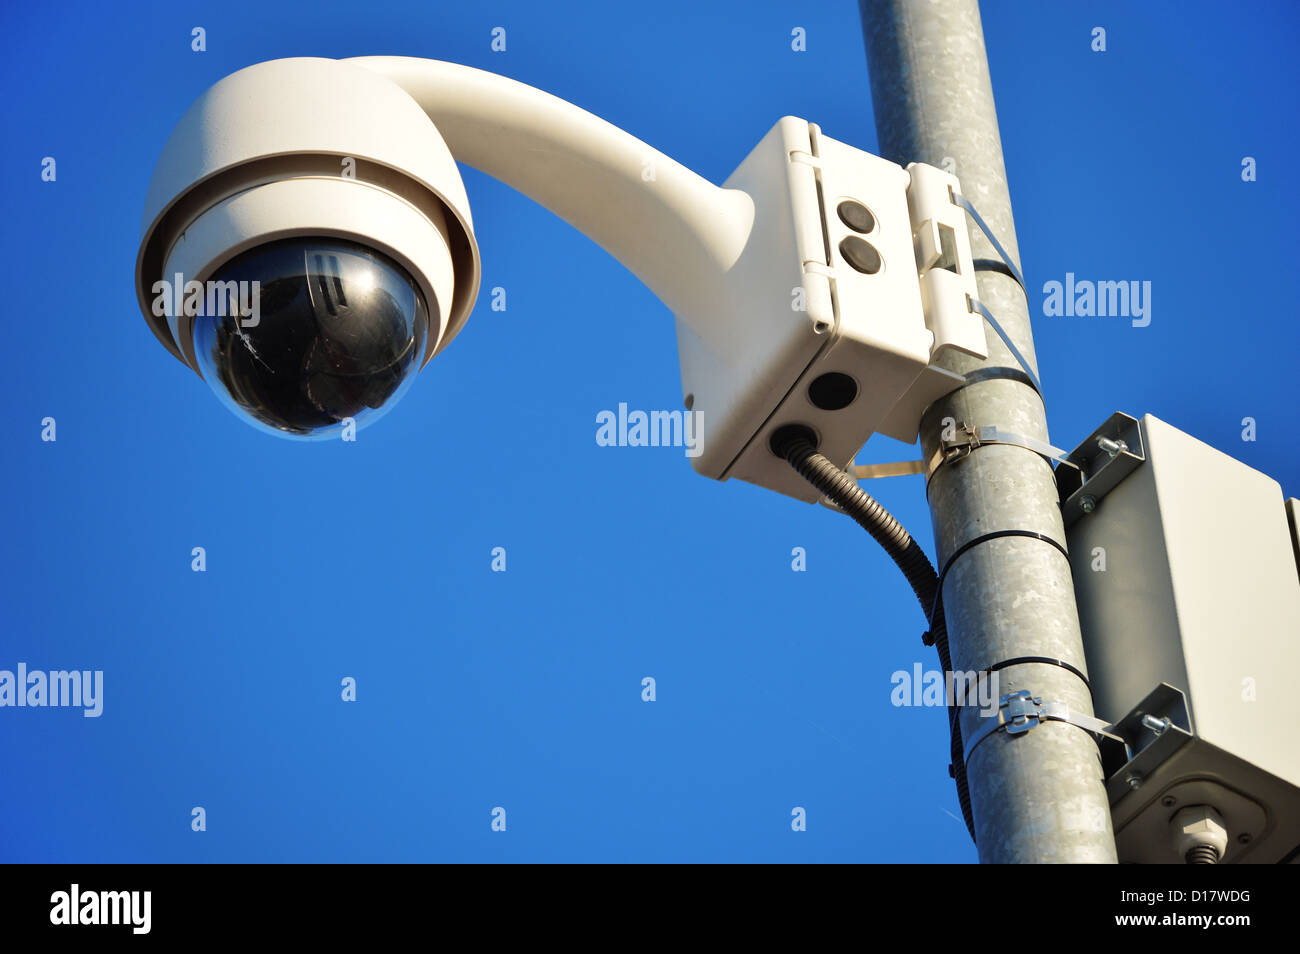 Hi-tech dome type camera over a blue sky - Stock Image